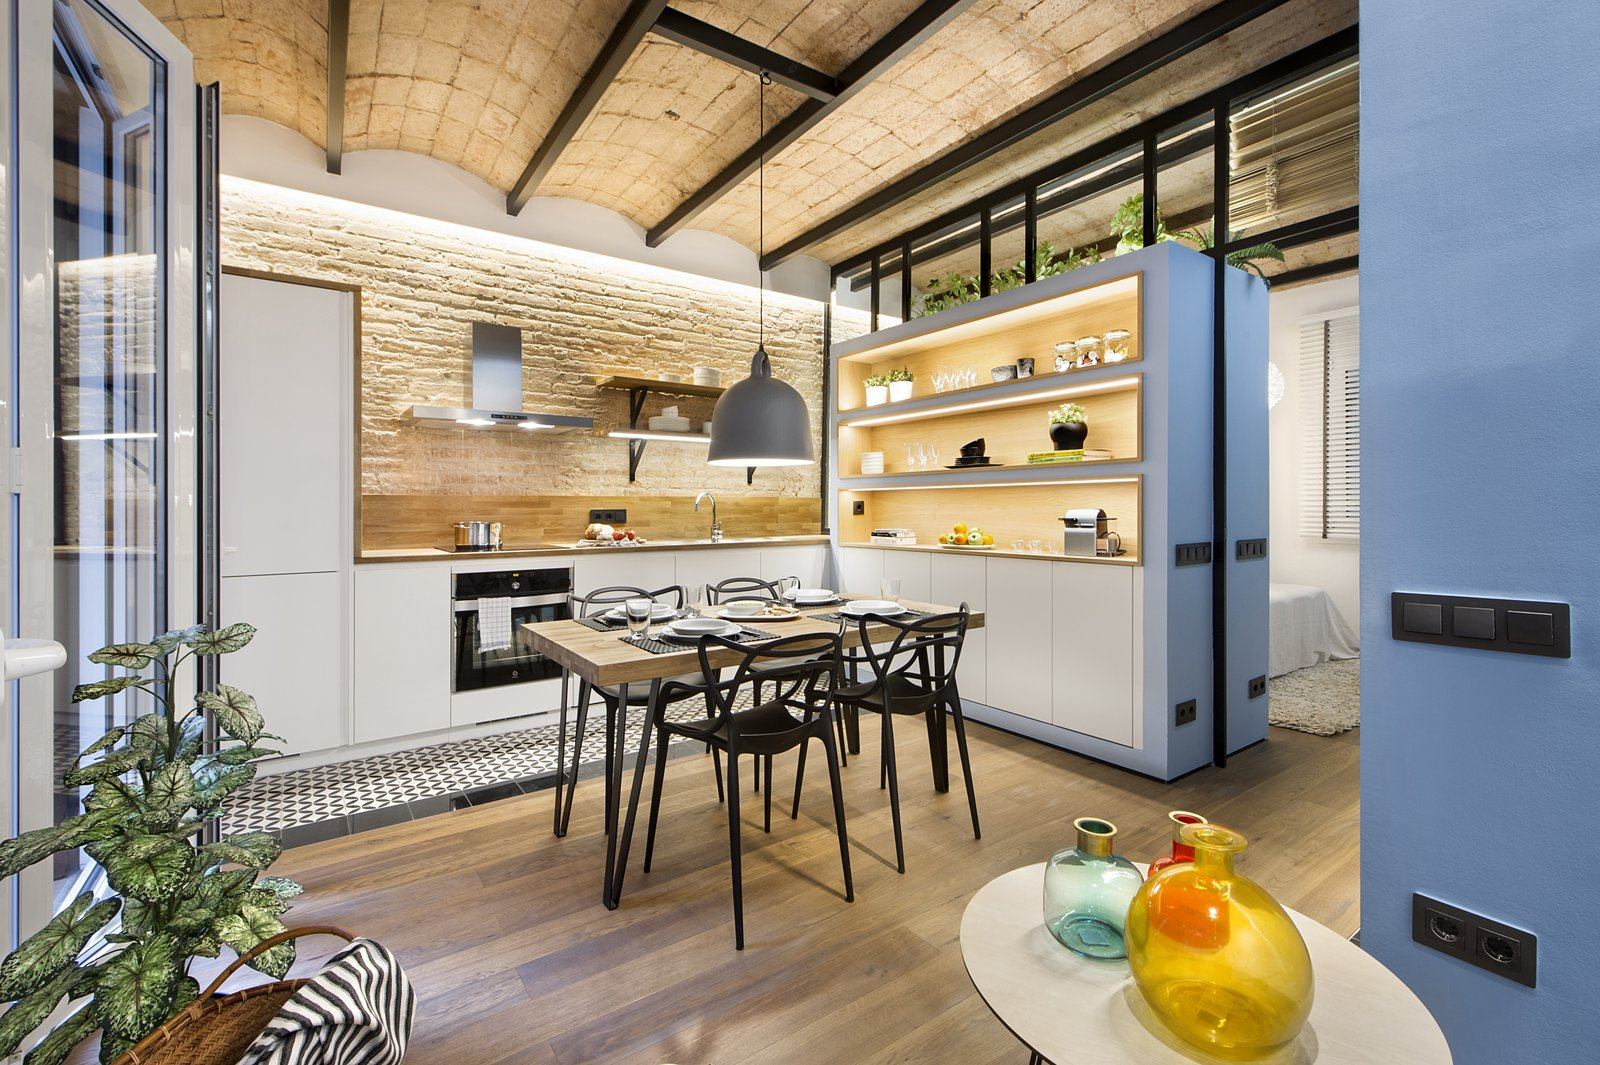 Kitchen, Wood Counter, Light Hardwood Floor, Pendant Lighting, Wood Backsplashe, Wall Oven, Ceiling Lighting, Range Hood, Range, Drop In Sink, and Ceramic Tile Floor  Urban Beach Home from A Smart Layout Maximizes Space in This Compact Urban Beach Apartment in Barcelona